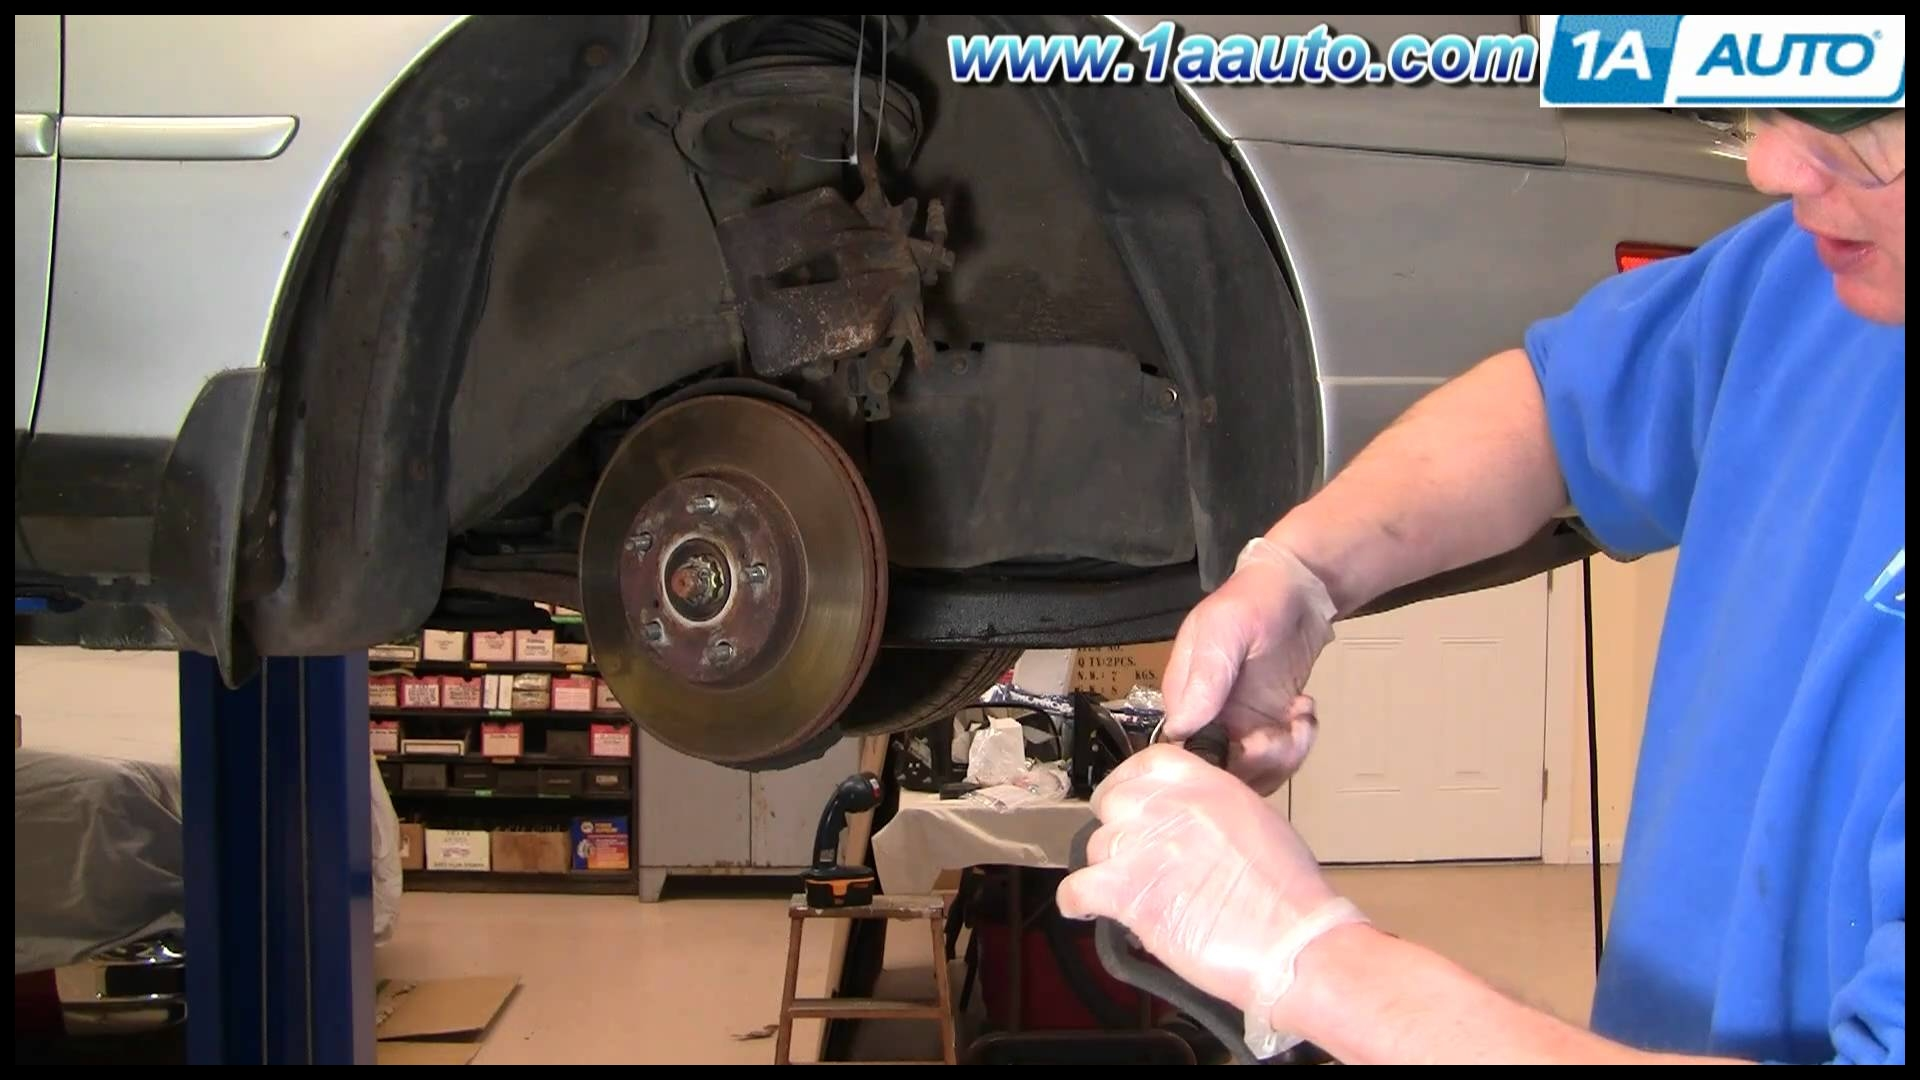 How to Install Replace Front Disc Brake Pads Rotors Toyota Camry 92 96 1AAuto